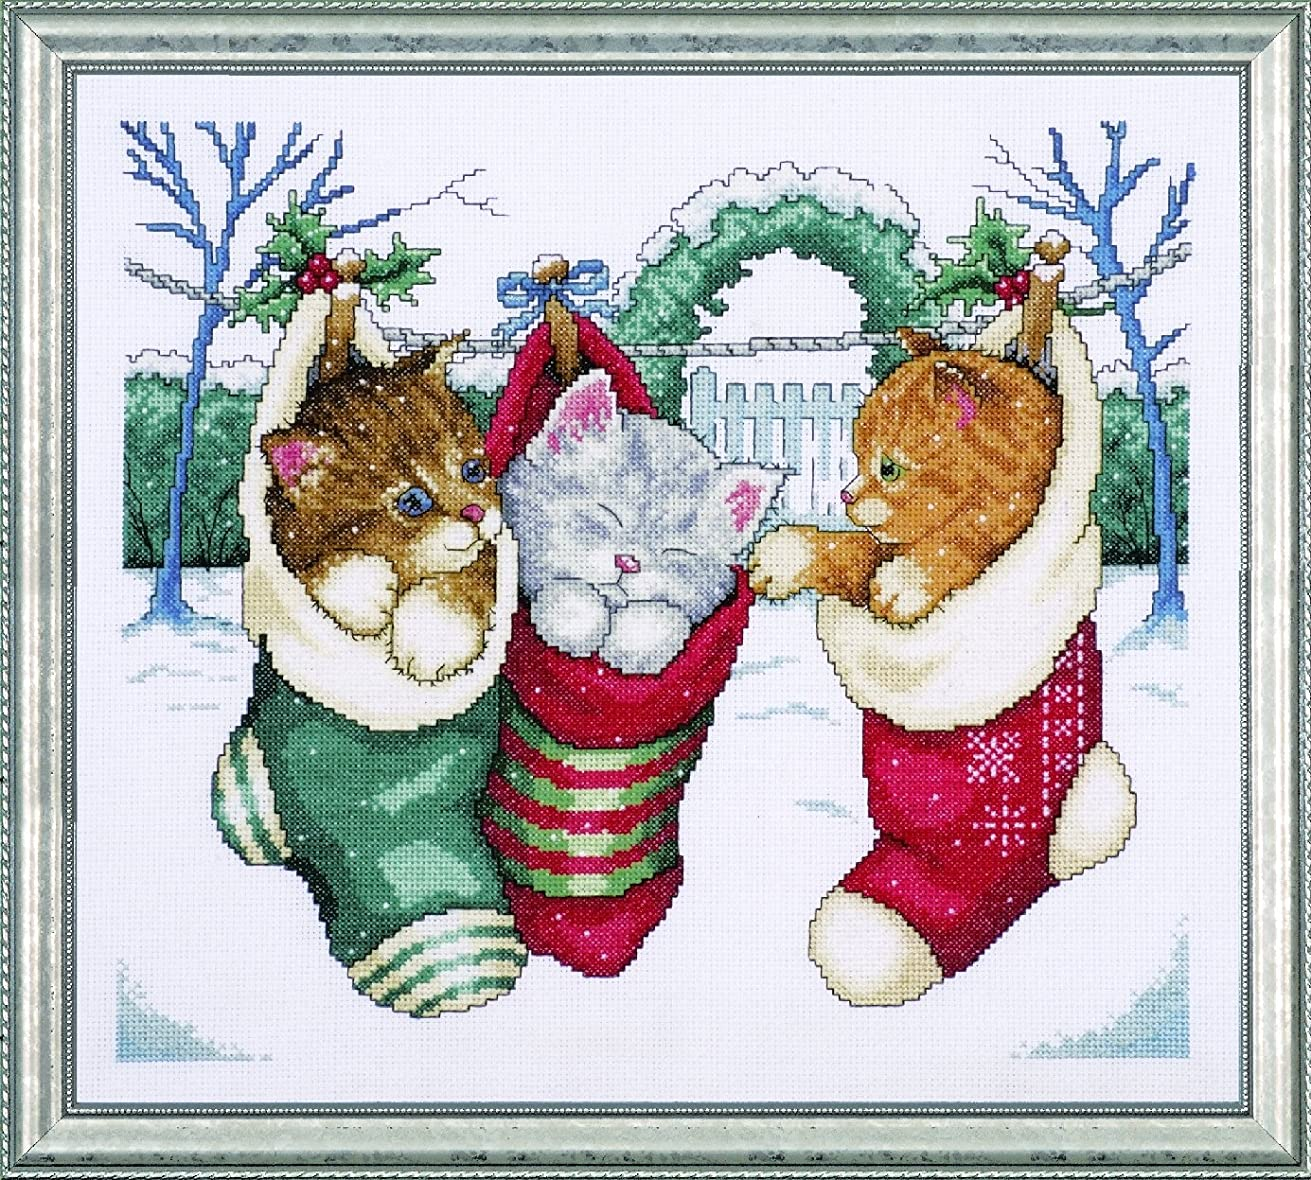 Tobin 5979 Cozy Kittens Counted Cross Stitch Kit, 12-Inch by 14-Inch, 14 Count